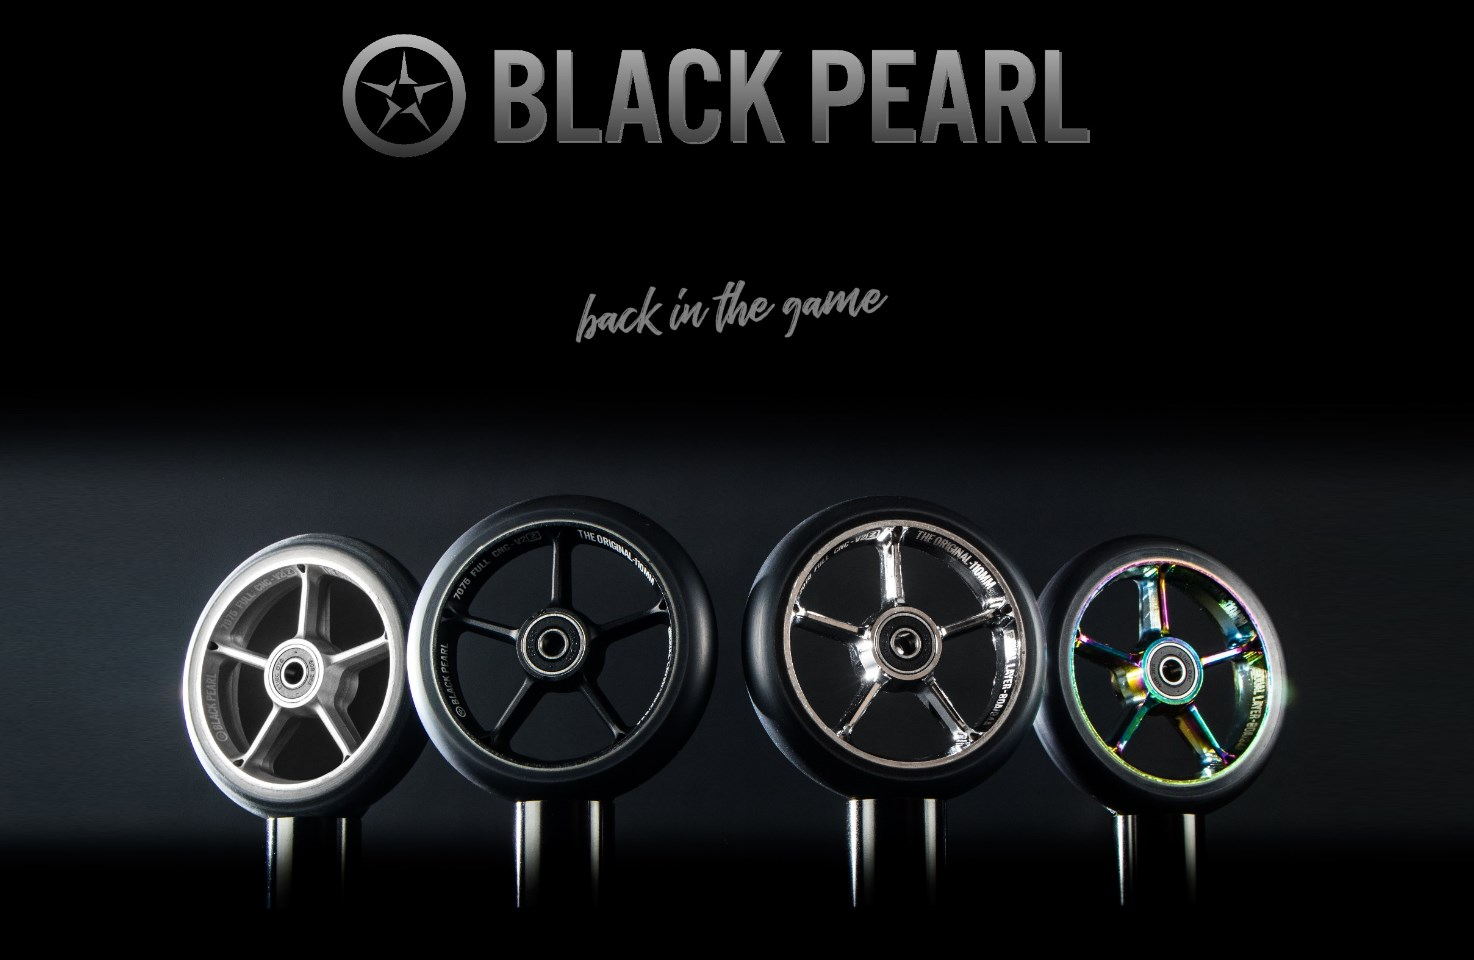 Black Pearl wheels